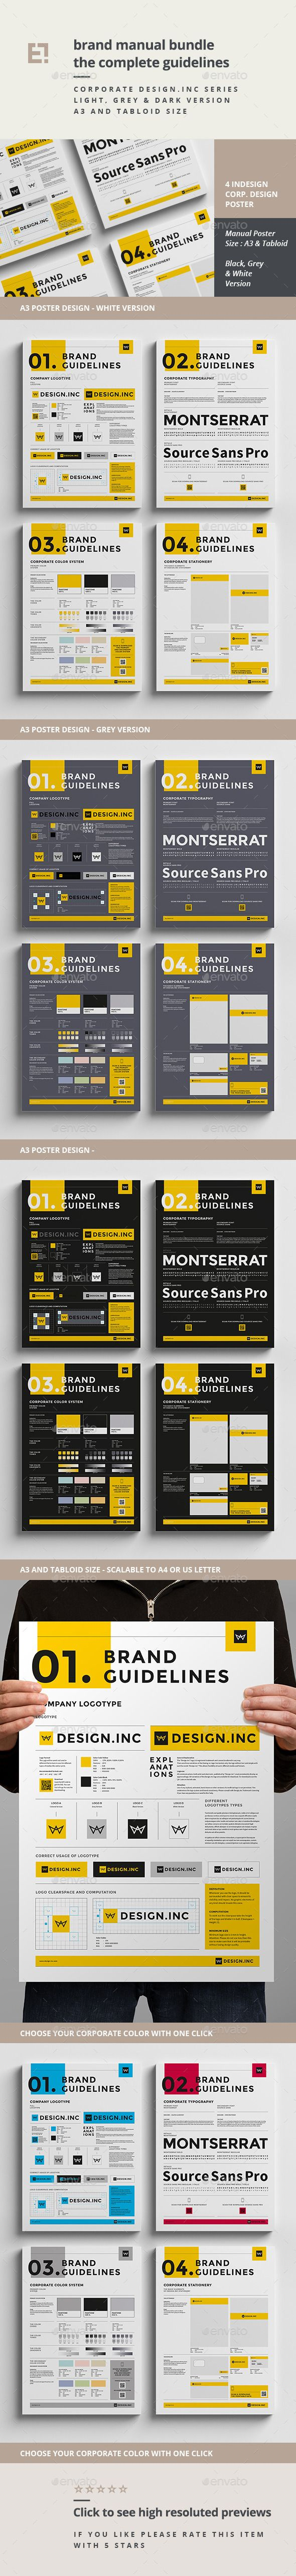 Minimal And Professional Brand Manual And Identity Poster Template